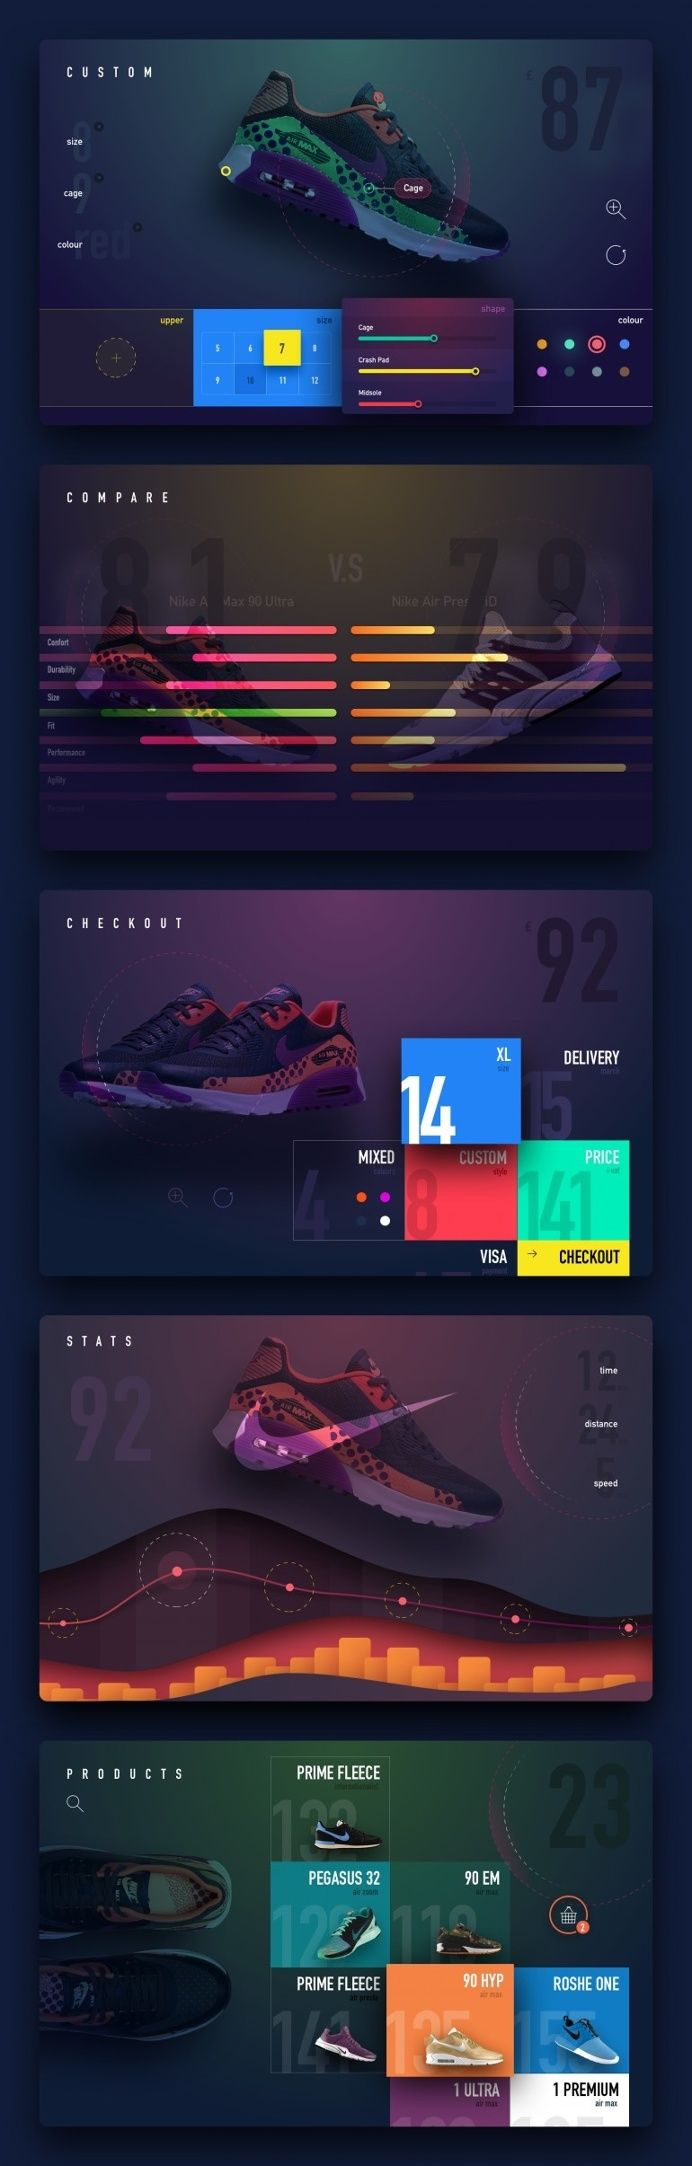 Nike90 Store by Balraj Chana